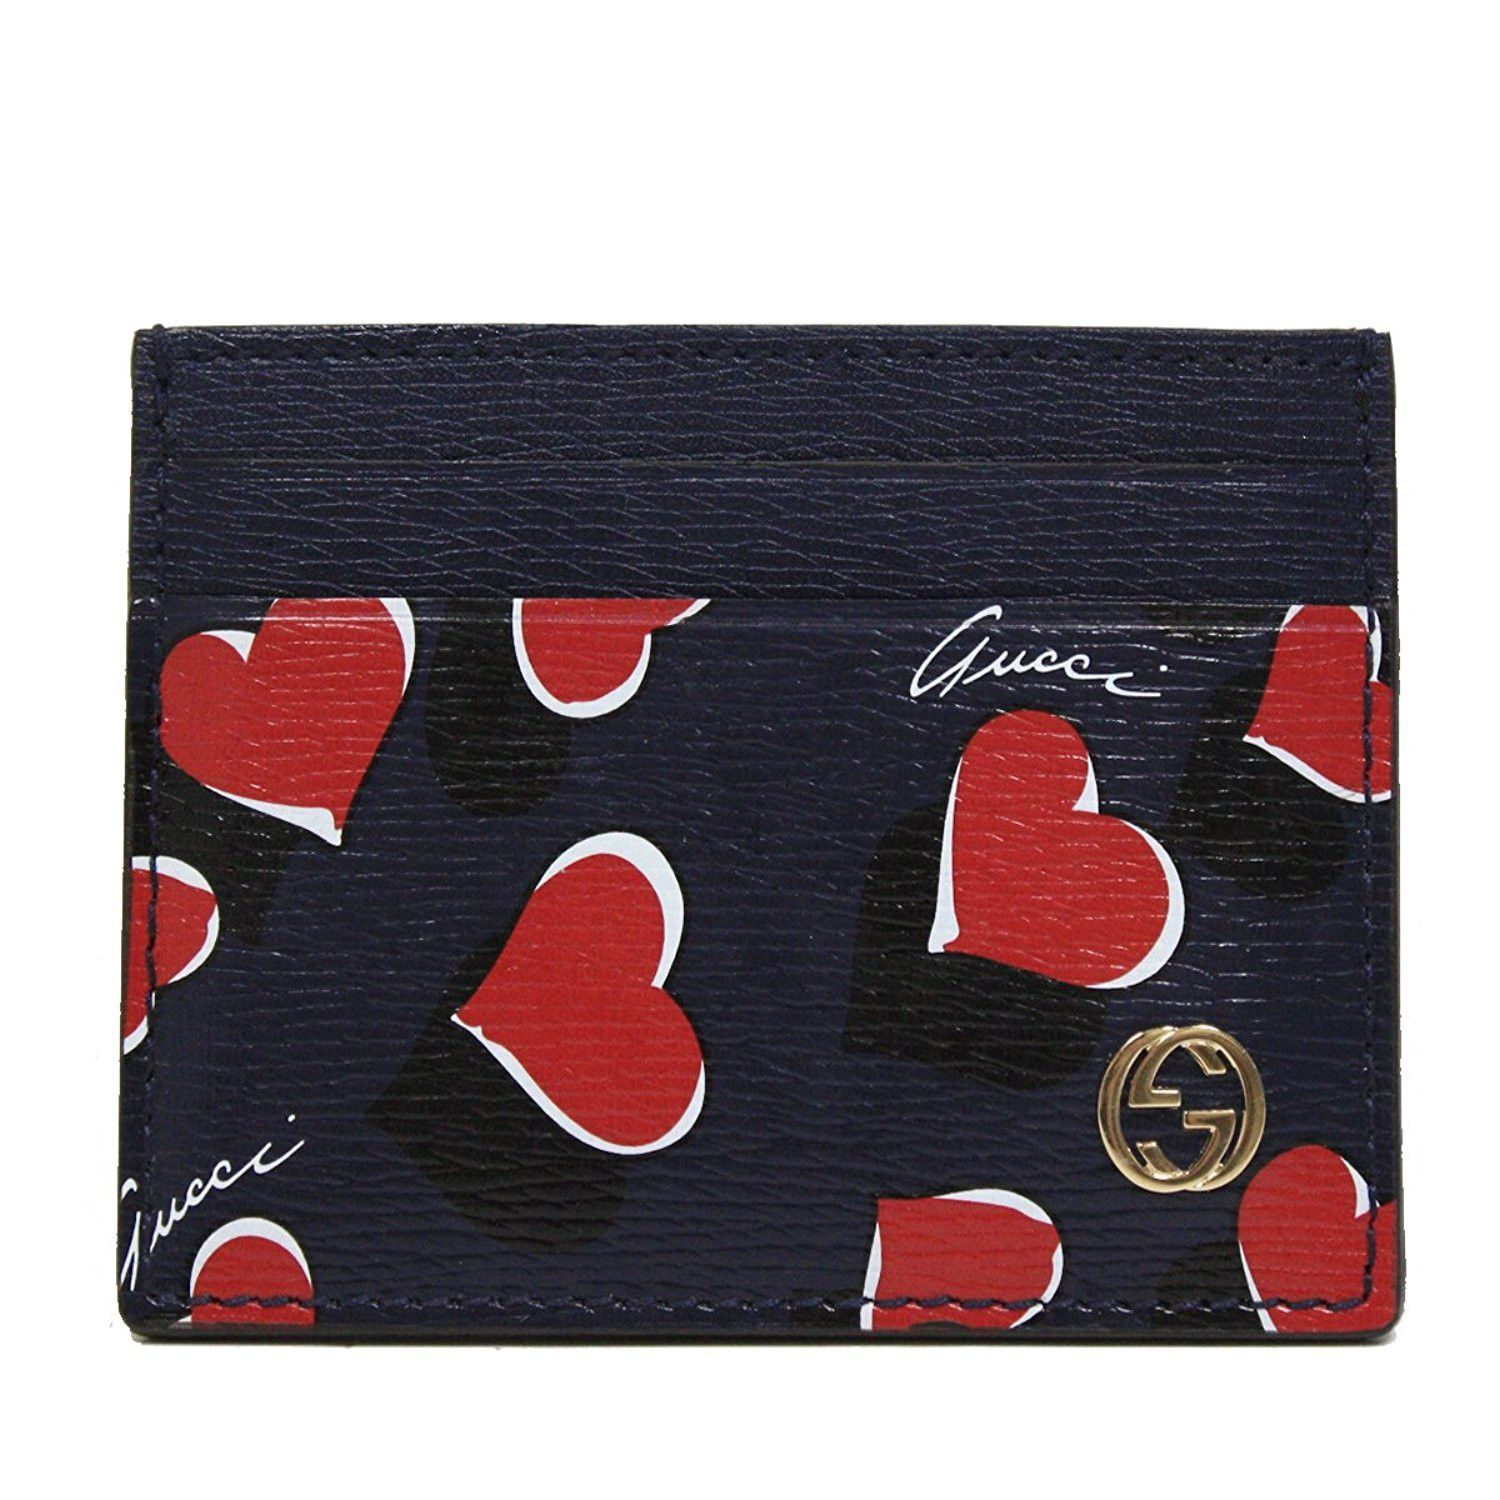 5f1d3ca1d3d Gucci Heart Heartbeat Collection Navy Blue Leather Business Card Case  Wallet 334483